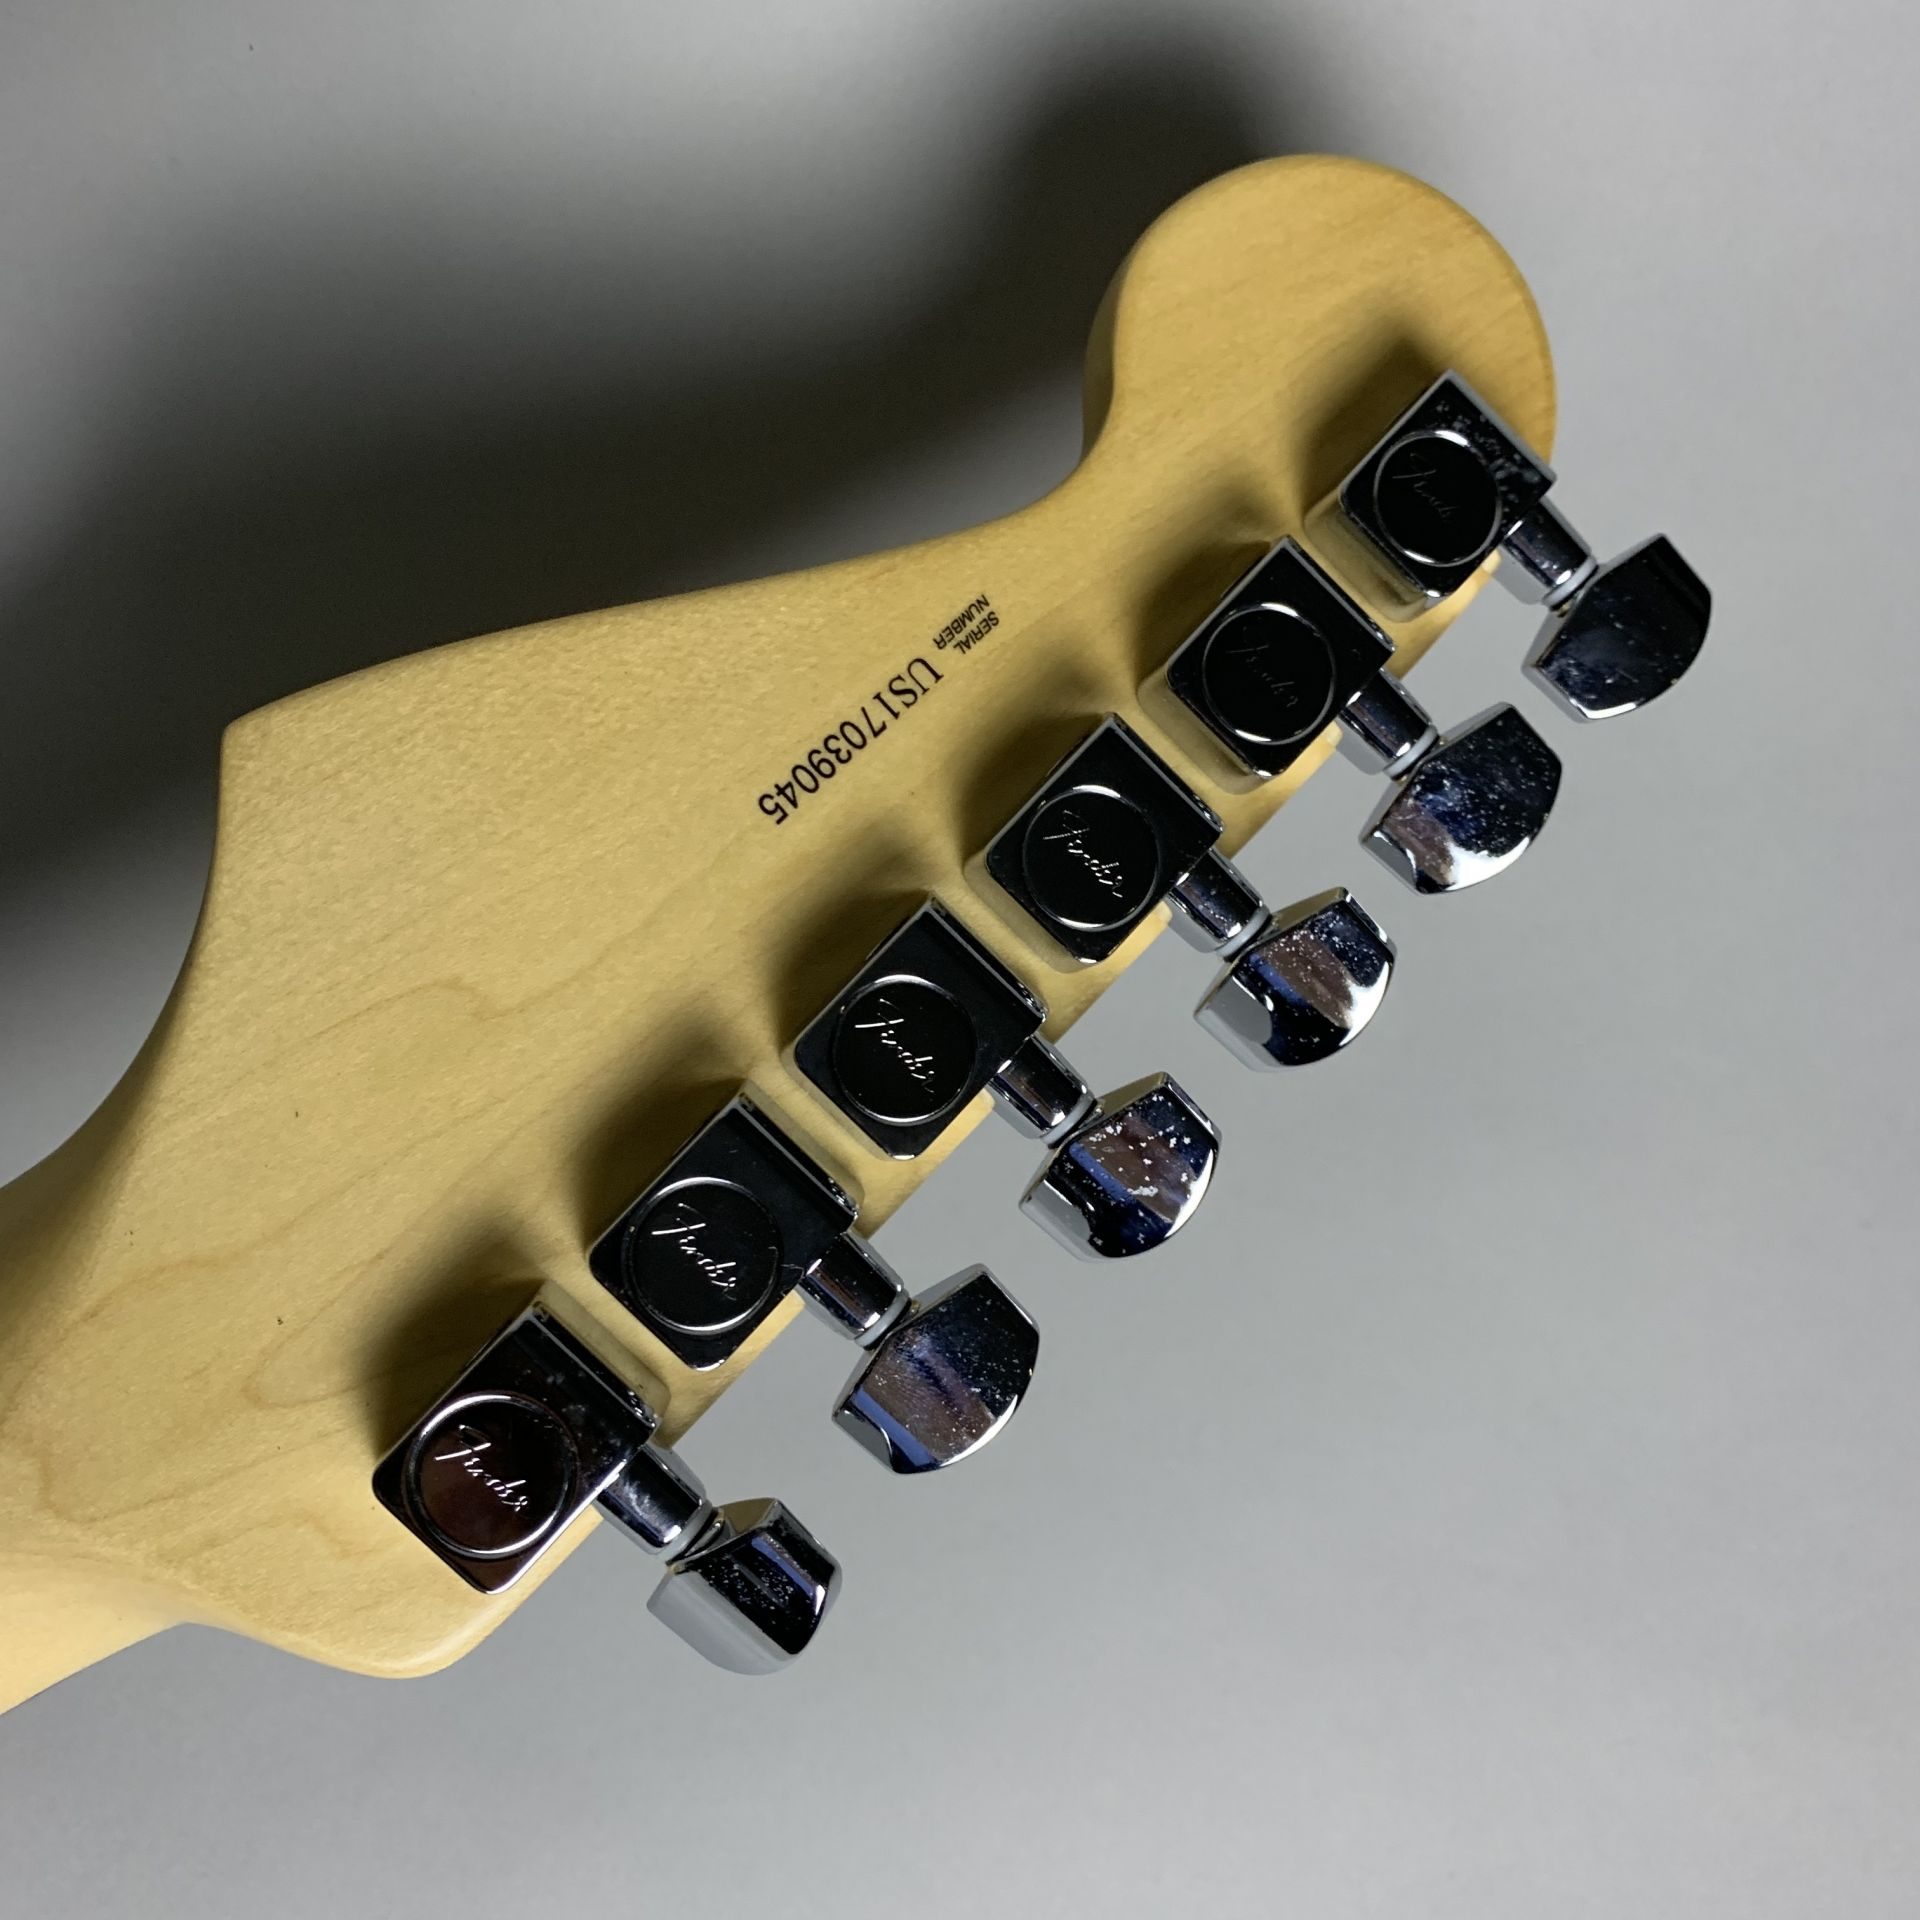 American Professional Stratocasterのケース・その他画像